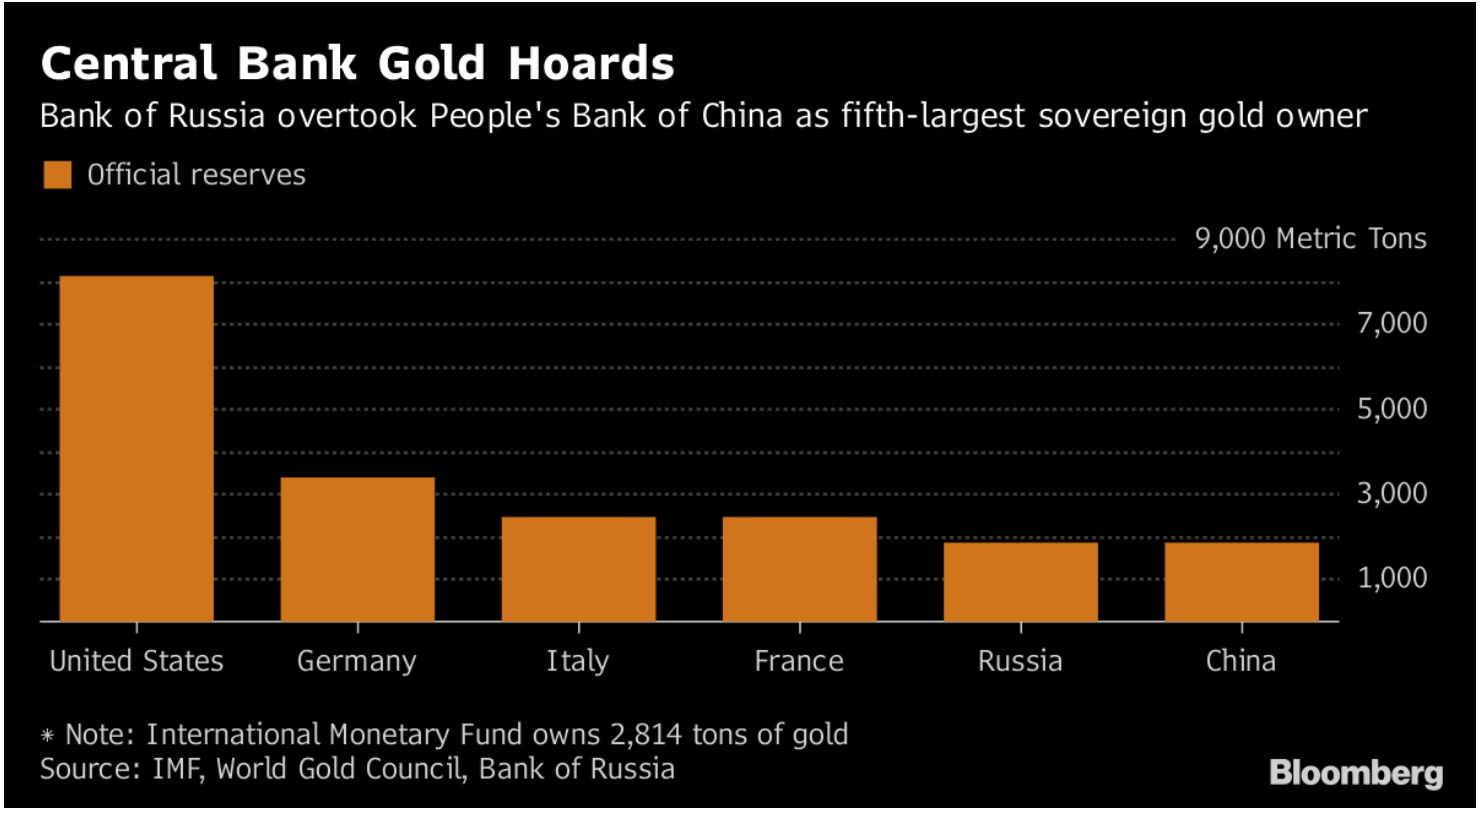 Hungary's Gold Repatriation Adds To Growing Protest Against US Dollar Hegemony Hungary's Gold Repatriation Adds To Growing Protest Against US Dollar Hegemony Snip20180313 9